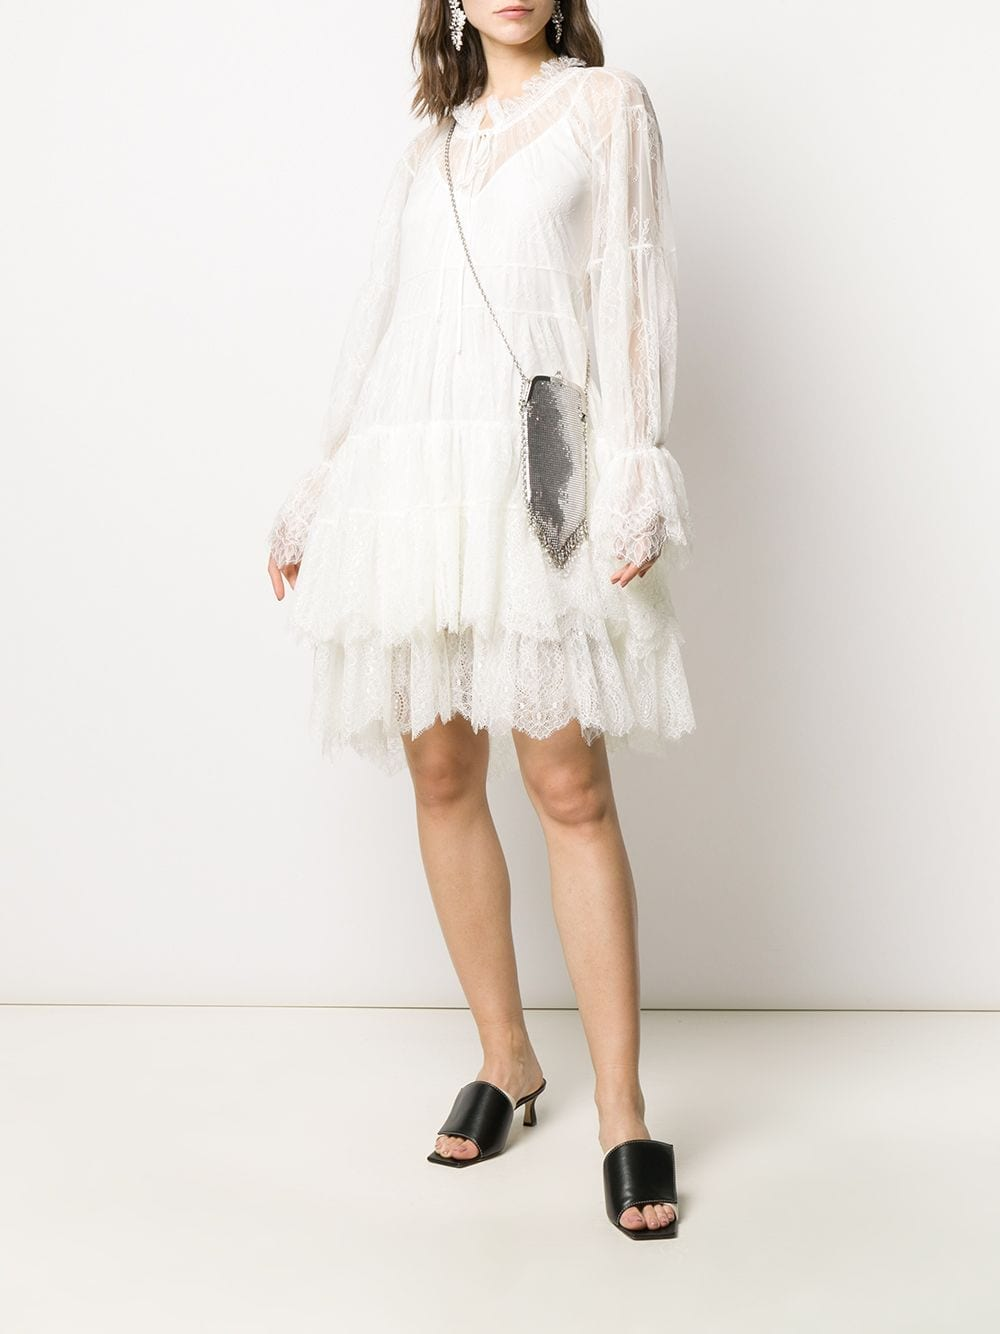 ERMANNO SCERVINO Tiered Floral Lace Mini Dress